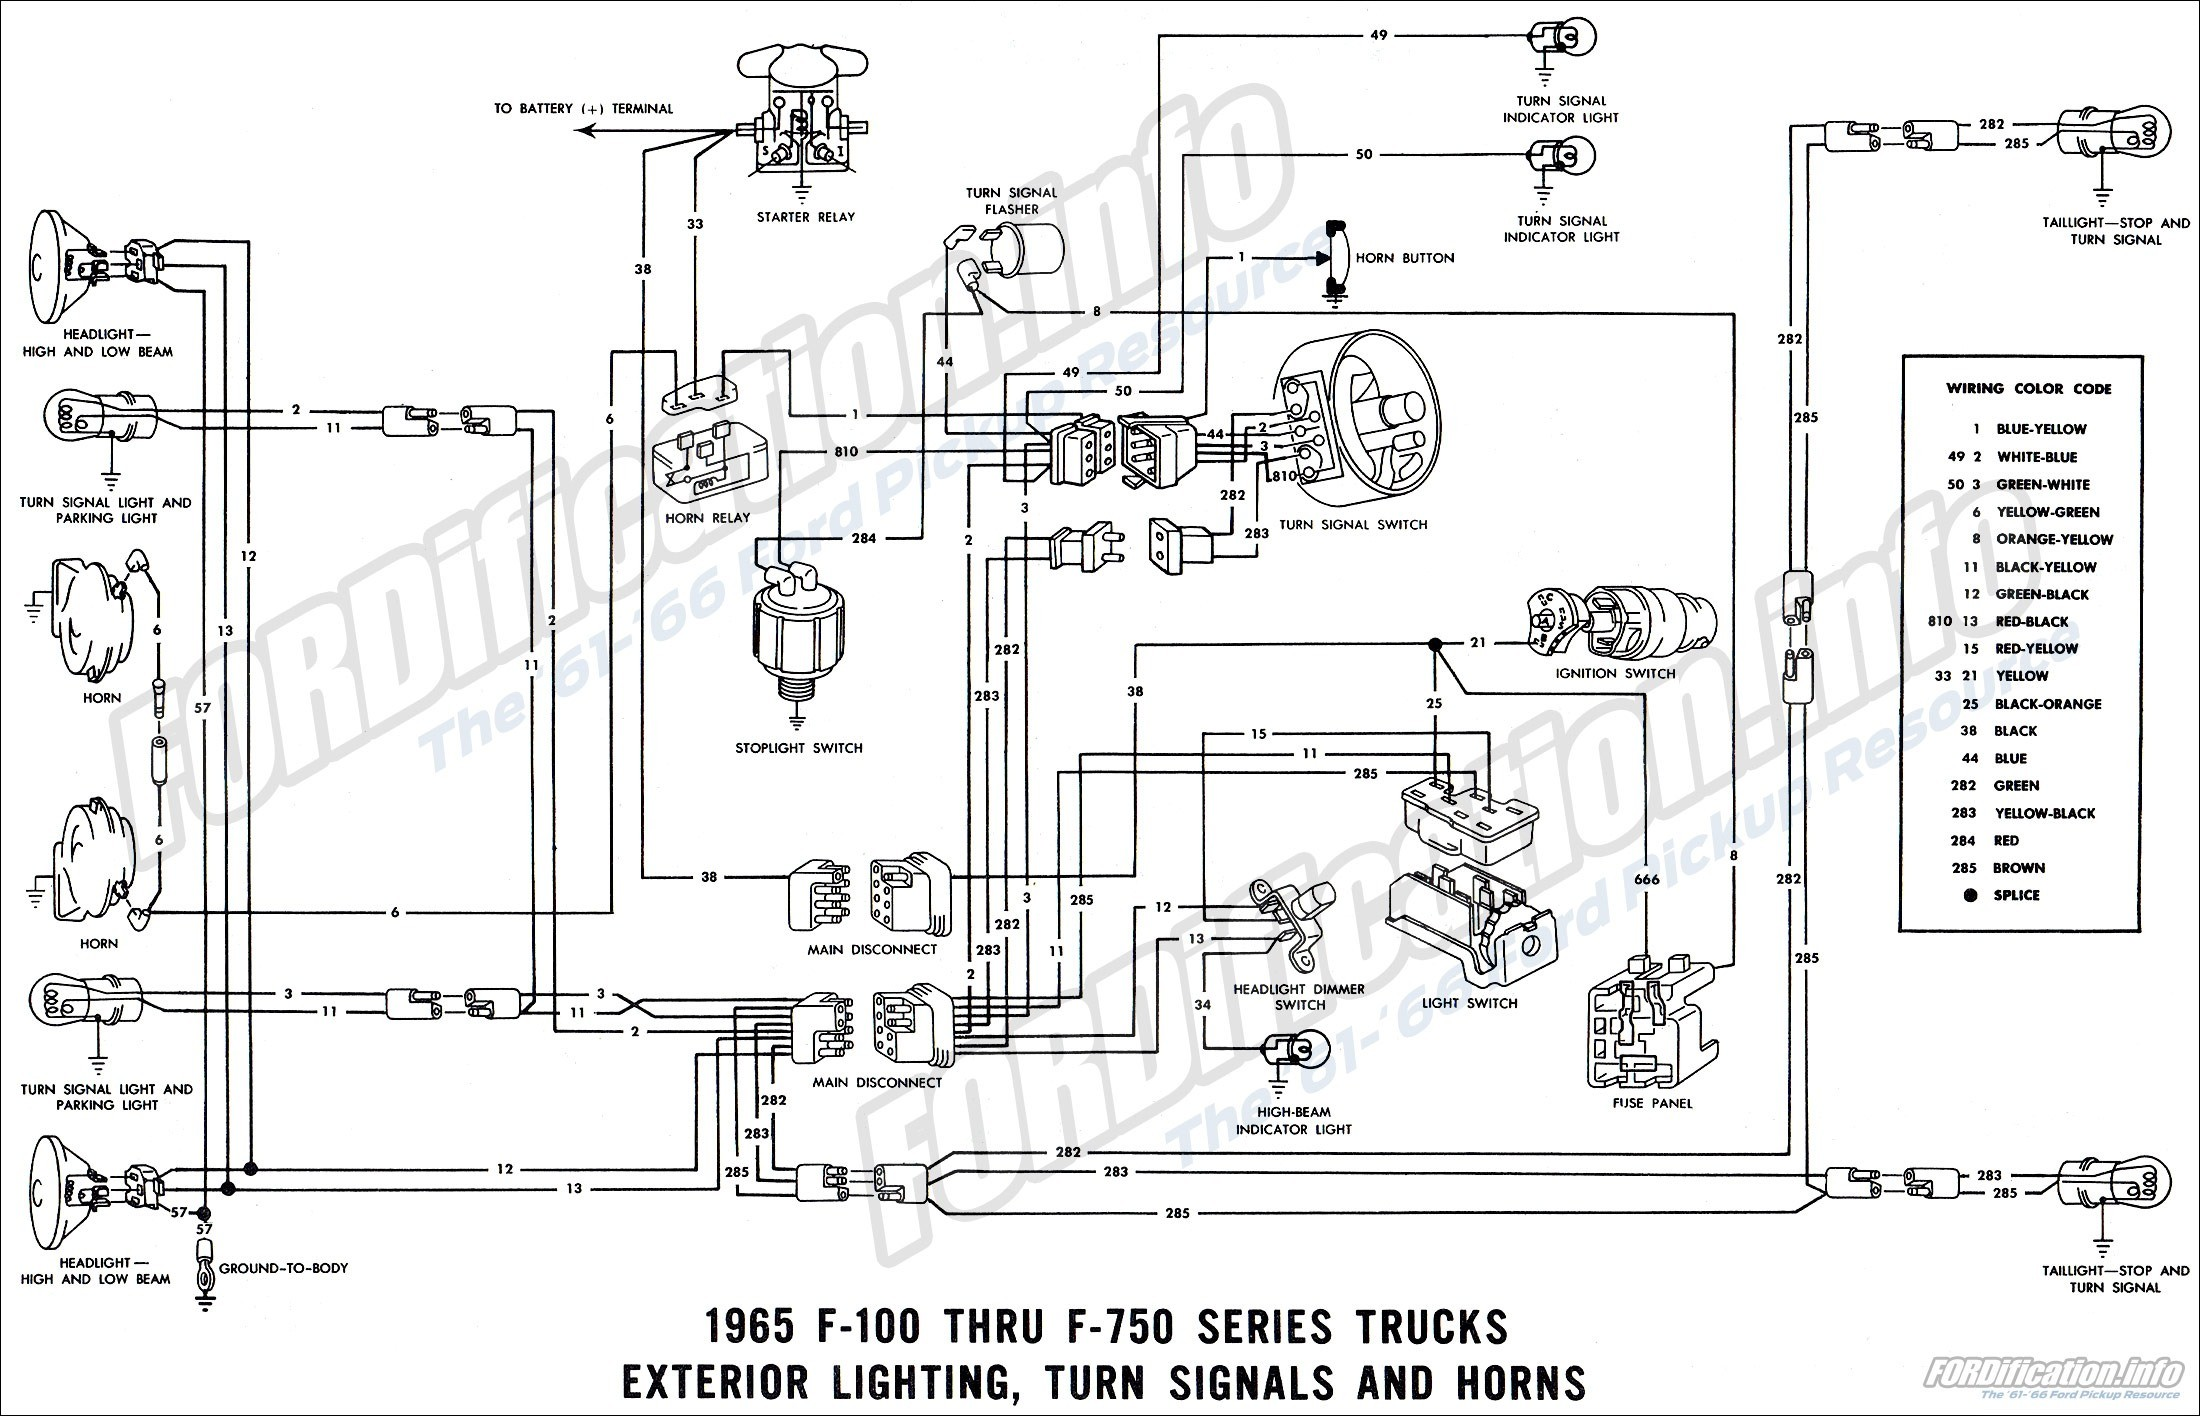 Turn signal wiring diagram chevy truck turn signal wiring diagram turn signal wiring diagram chevy truck 1973 1979 ford truck wiring diagrams schematics fordification of related post publicscrutiny Choice Image